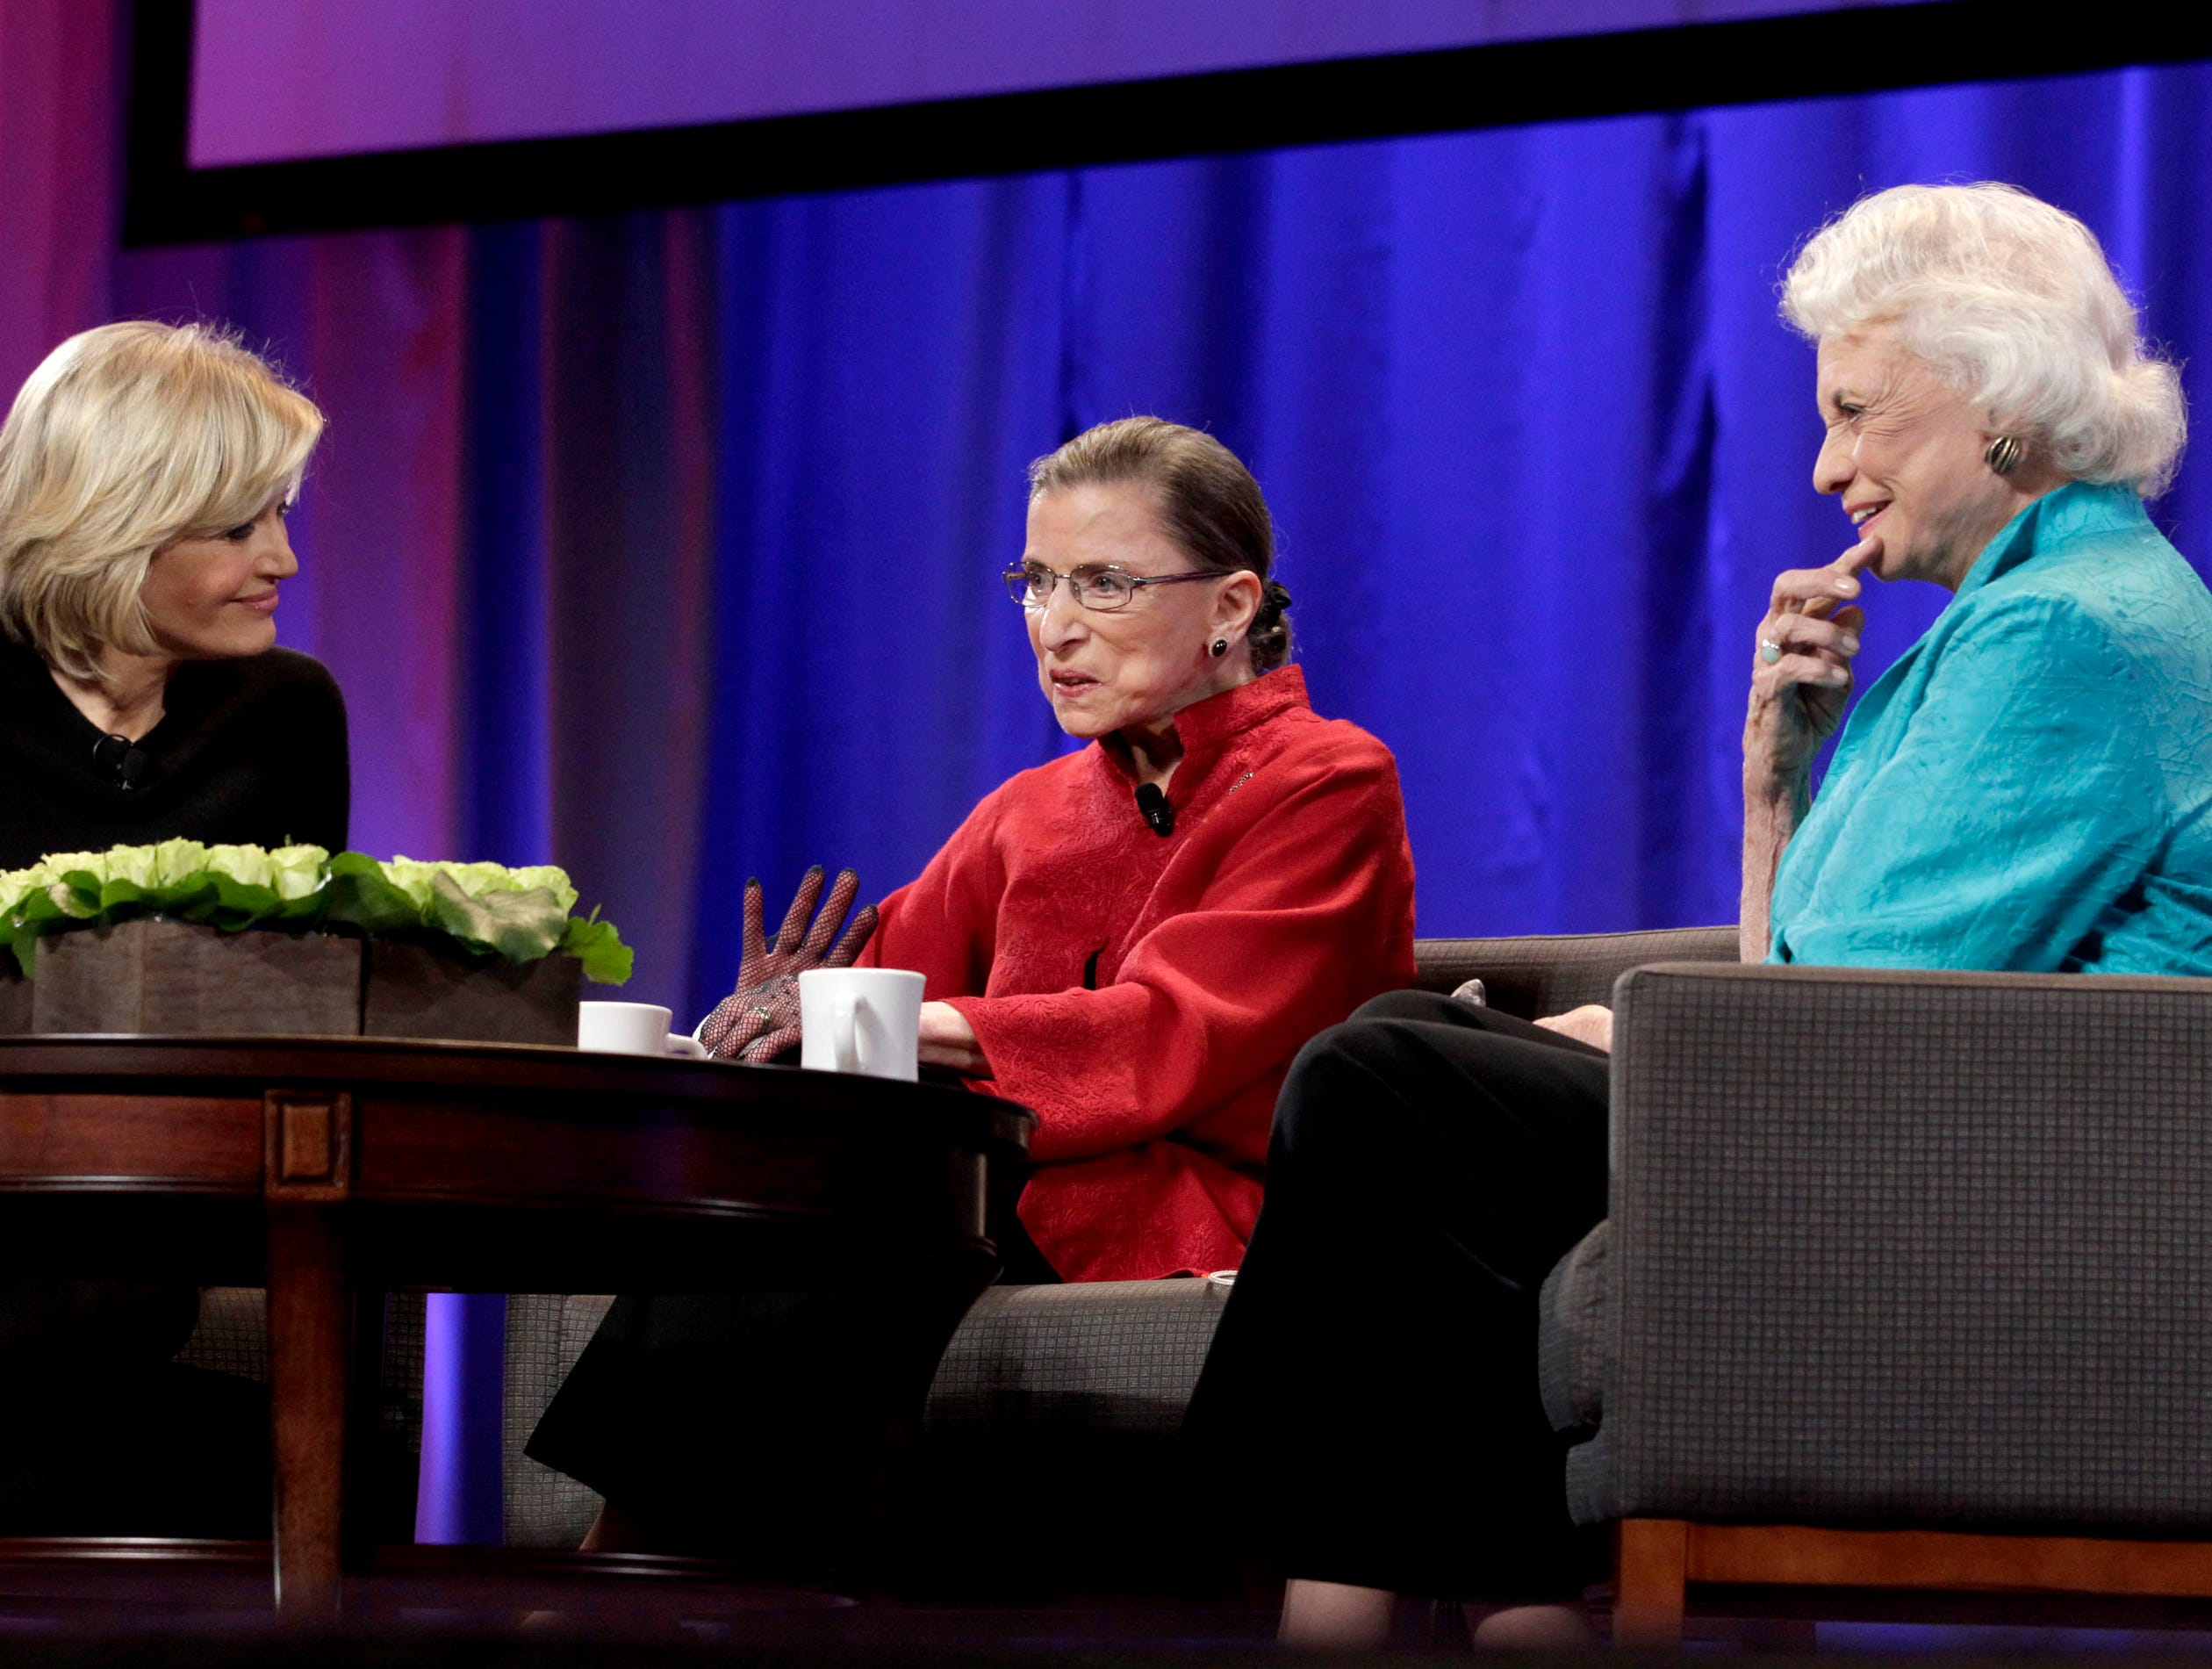 From left, Diane Sawyer, the honorable Ruth Bader Ginsburg and the honorable Sandra Day O'Connor, are seen on stage at the Women's Conference on Oct. 26, 2010, in Long Beach, California.